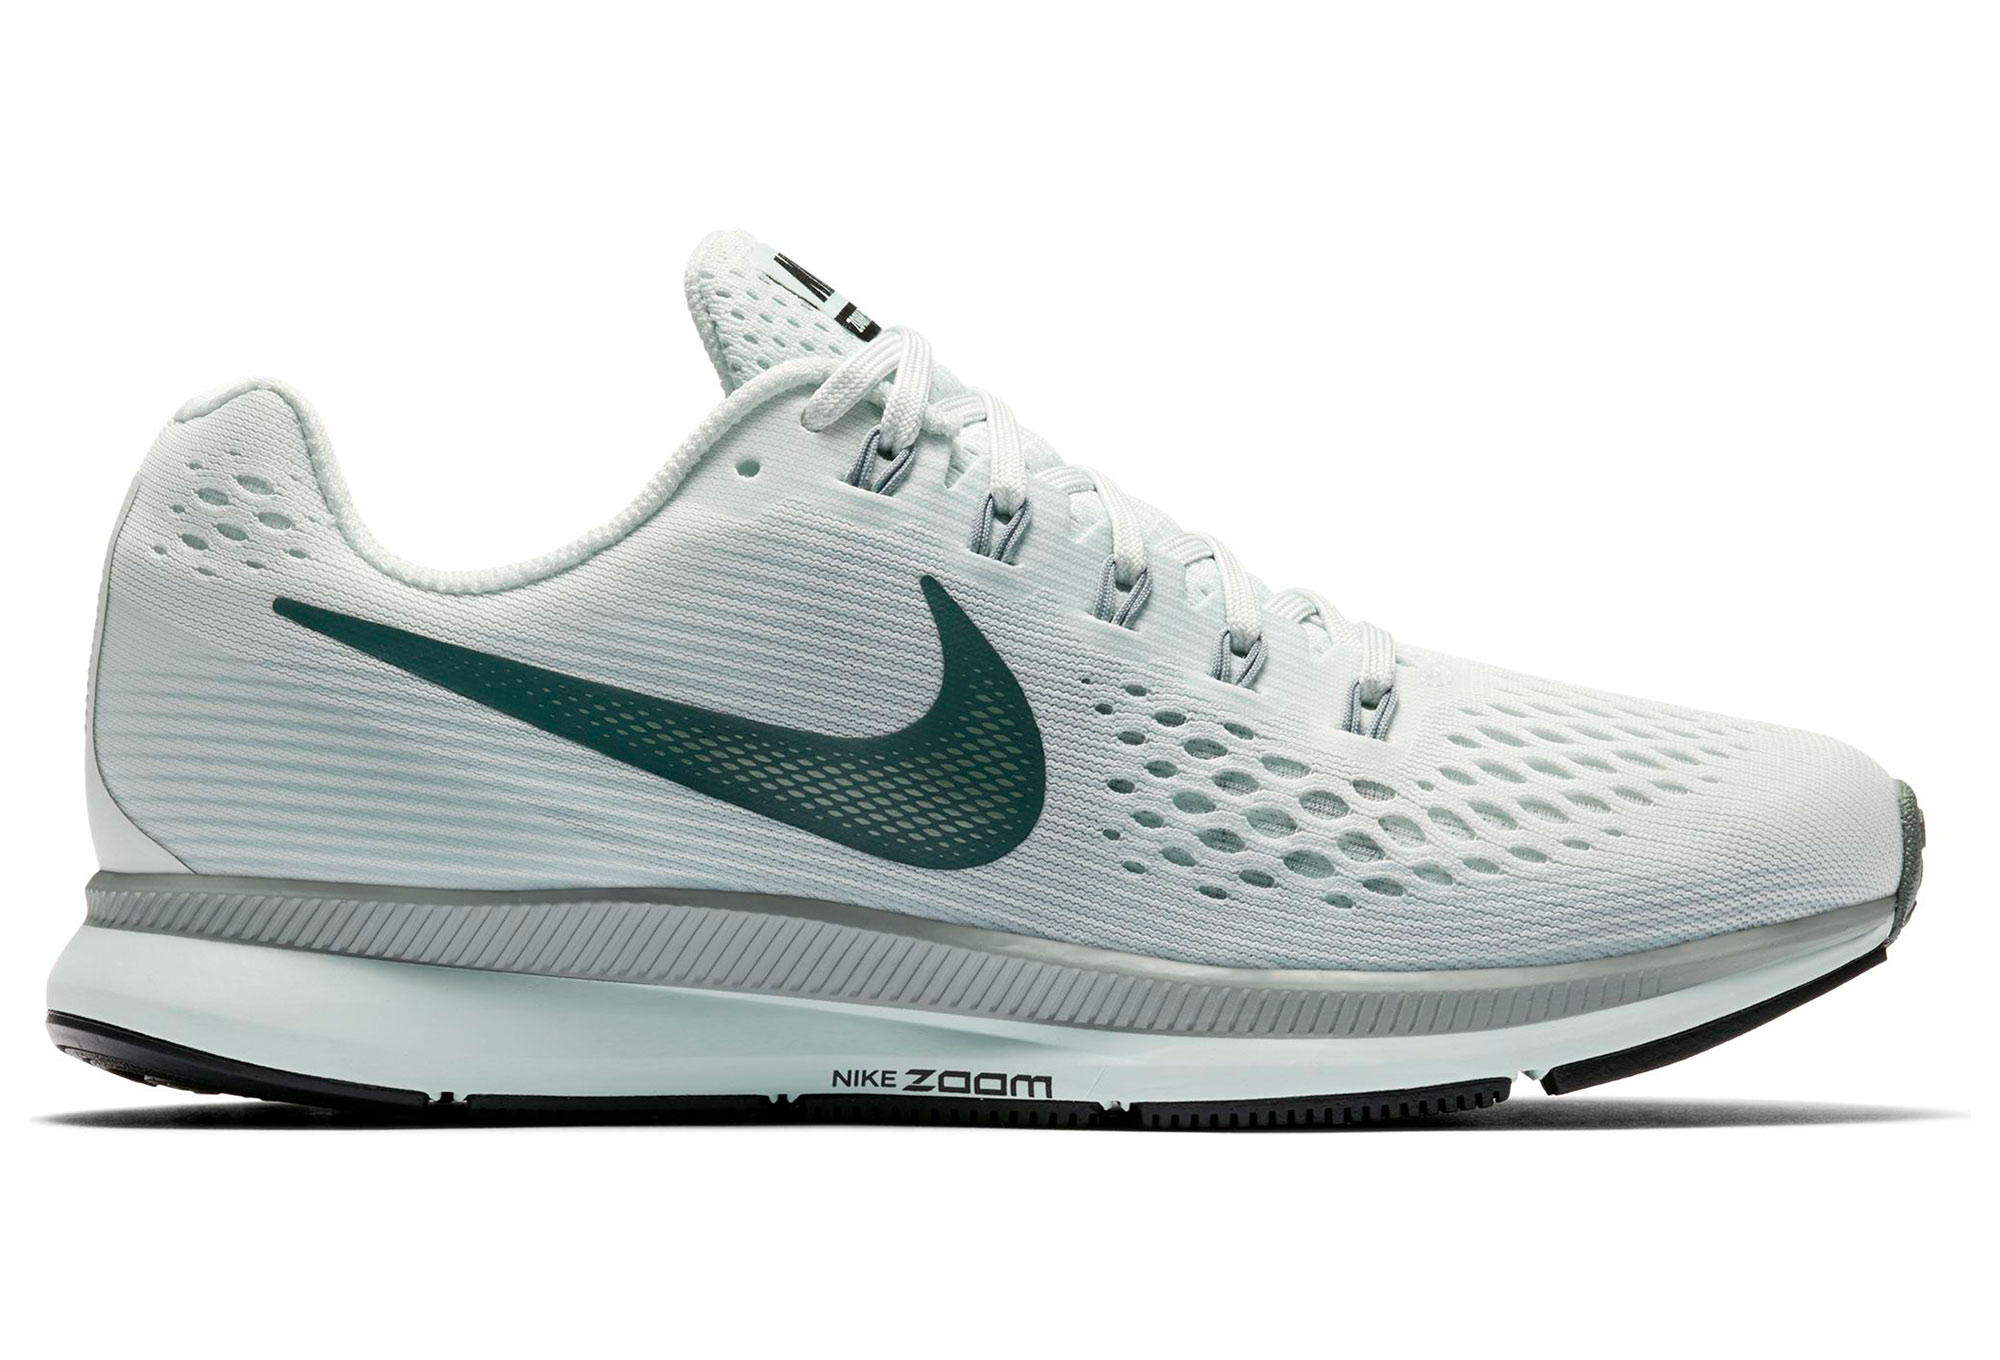 best loved f9cf5 151df Chaussures de Running Femme Nike Air Zoom Pegasus 34 Blanc   Vert